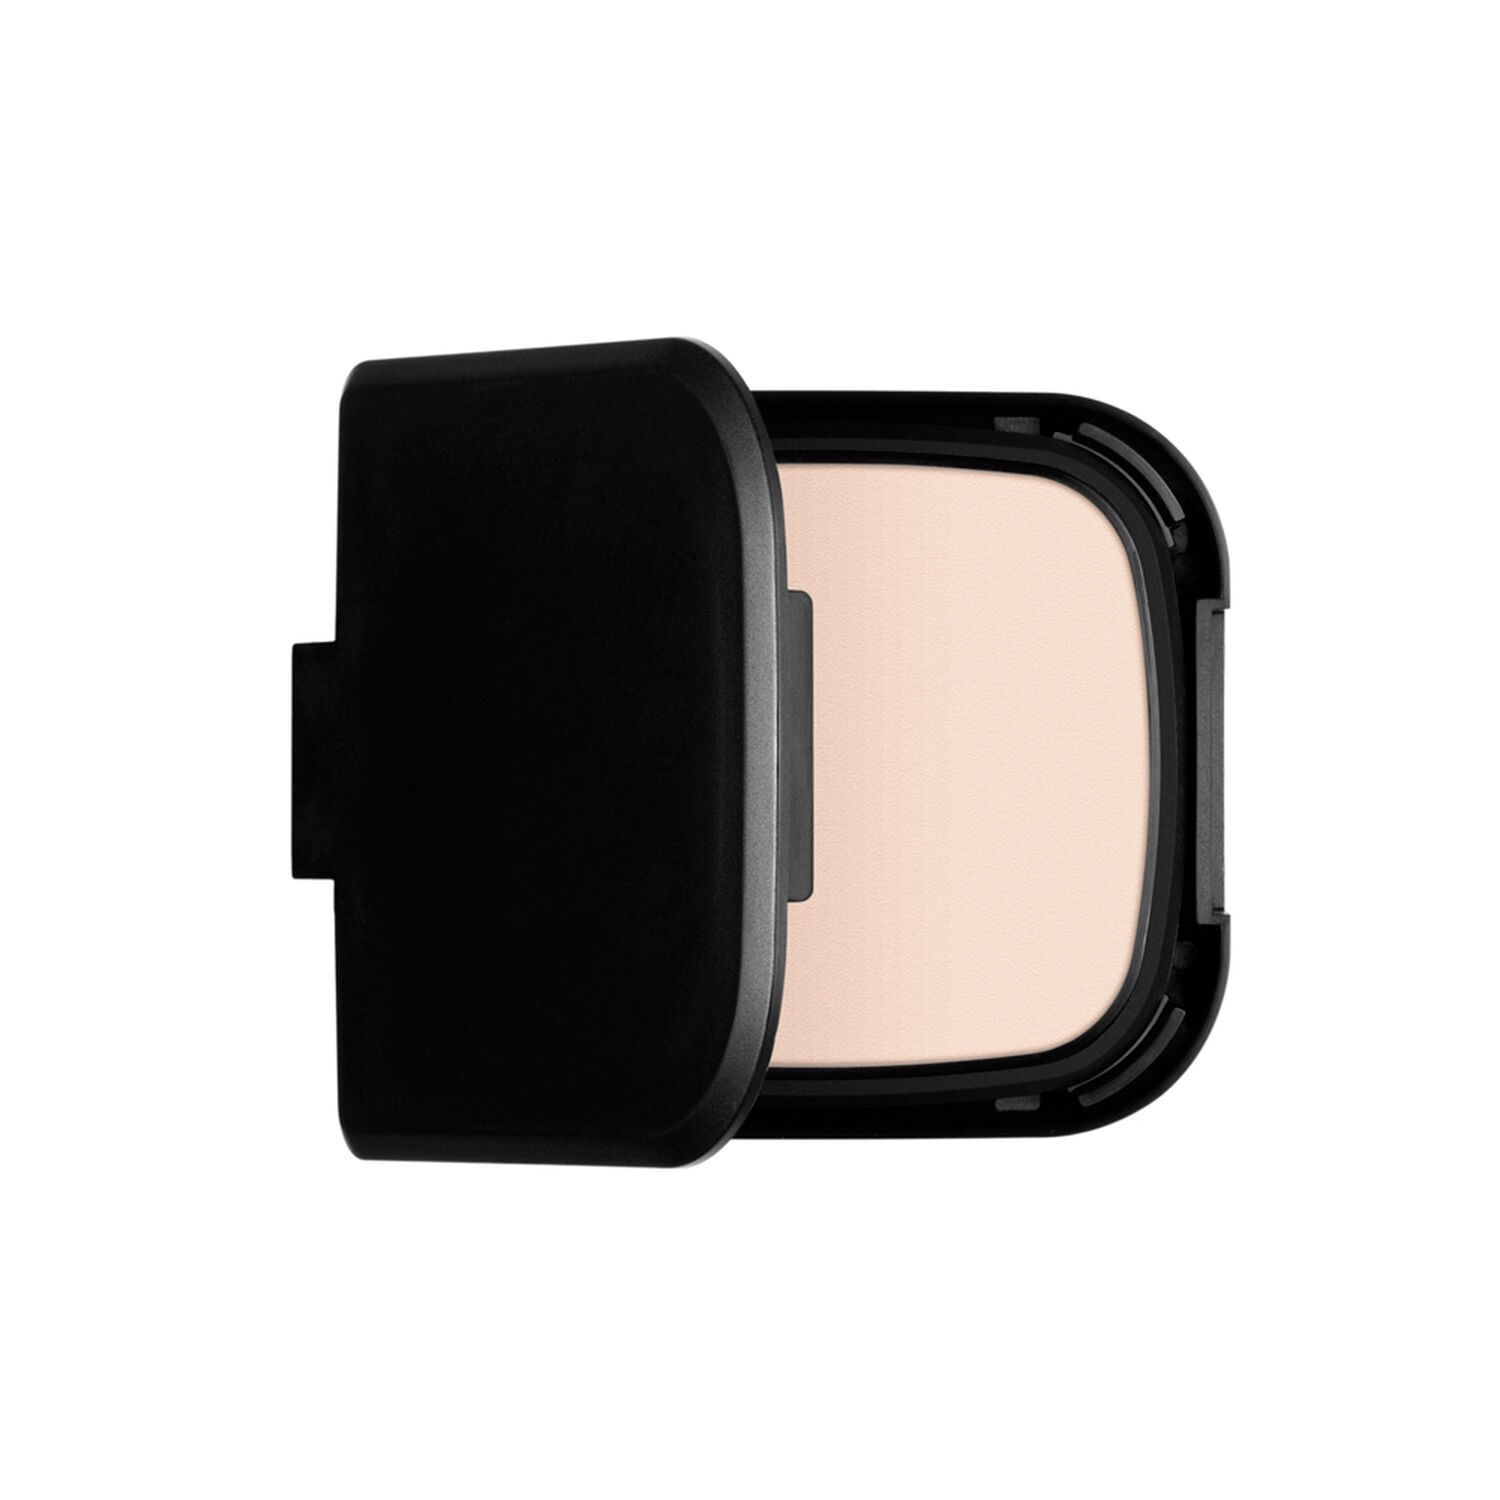 RADIANT CREAM COMPACT FOUNDATION (REFILL) SPF25 1